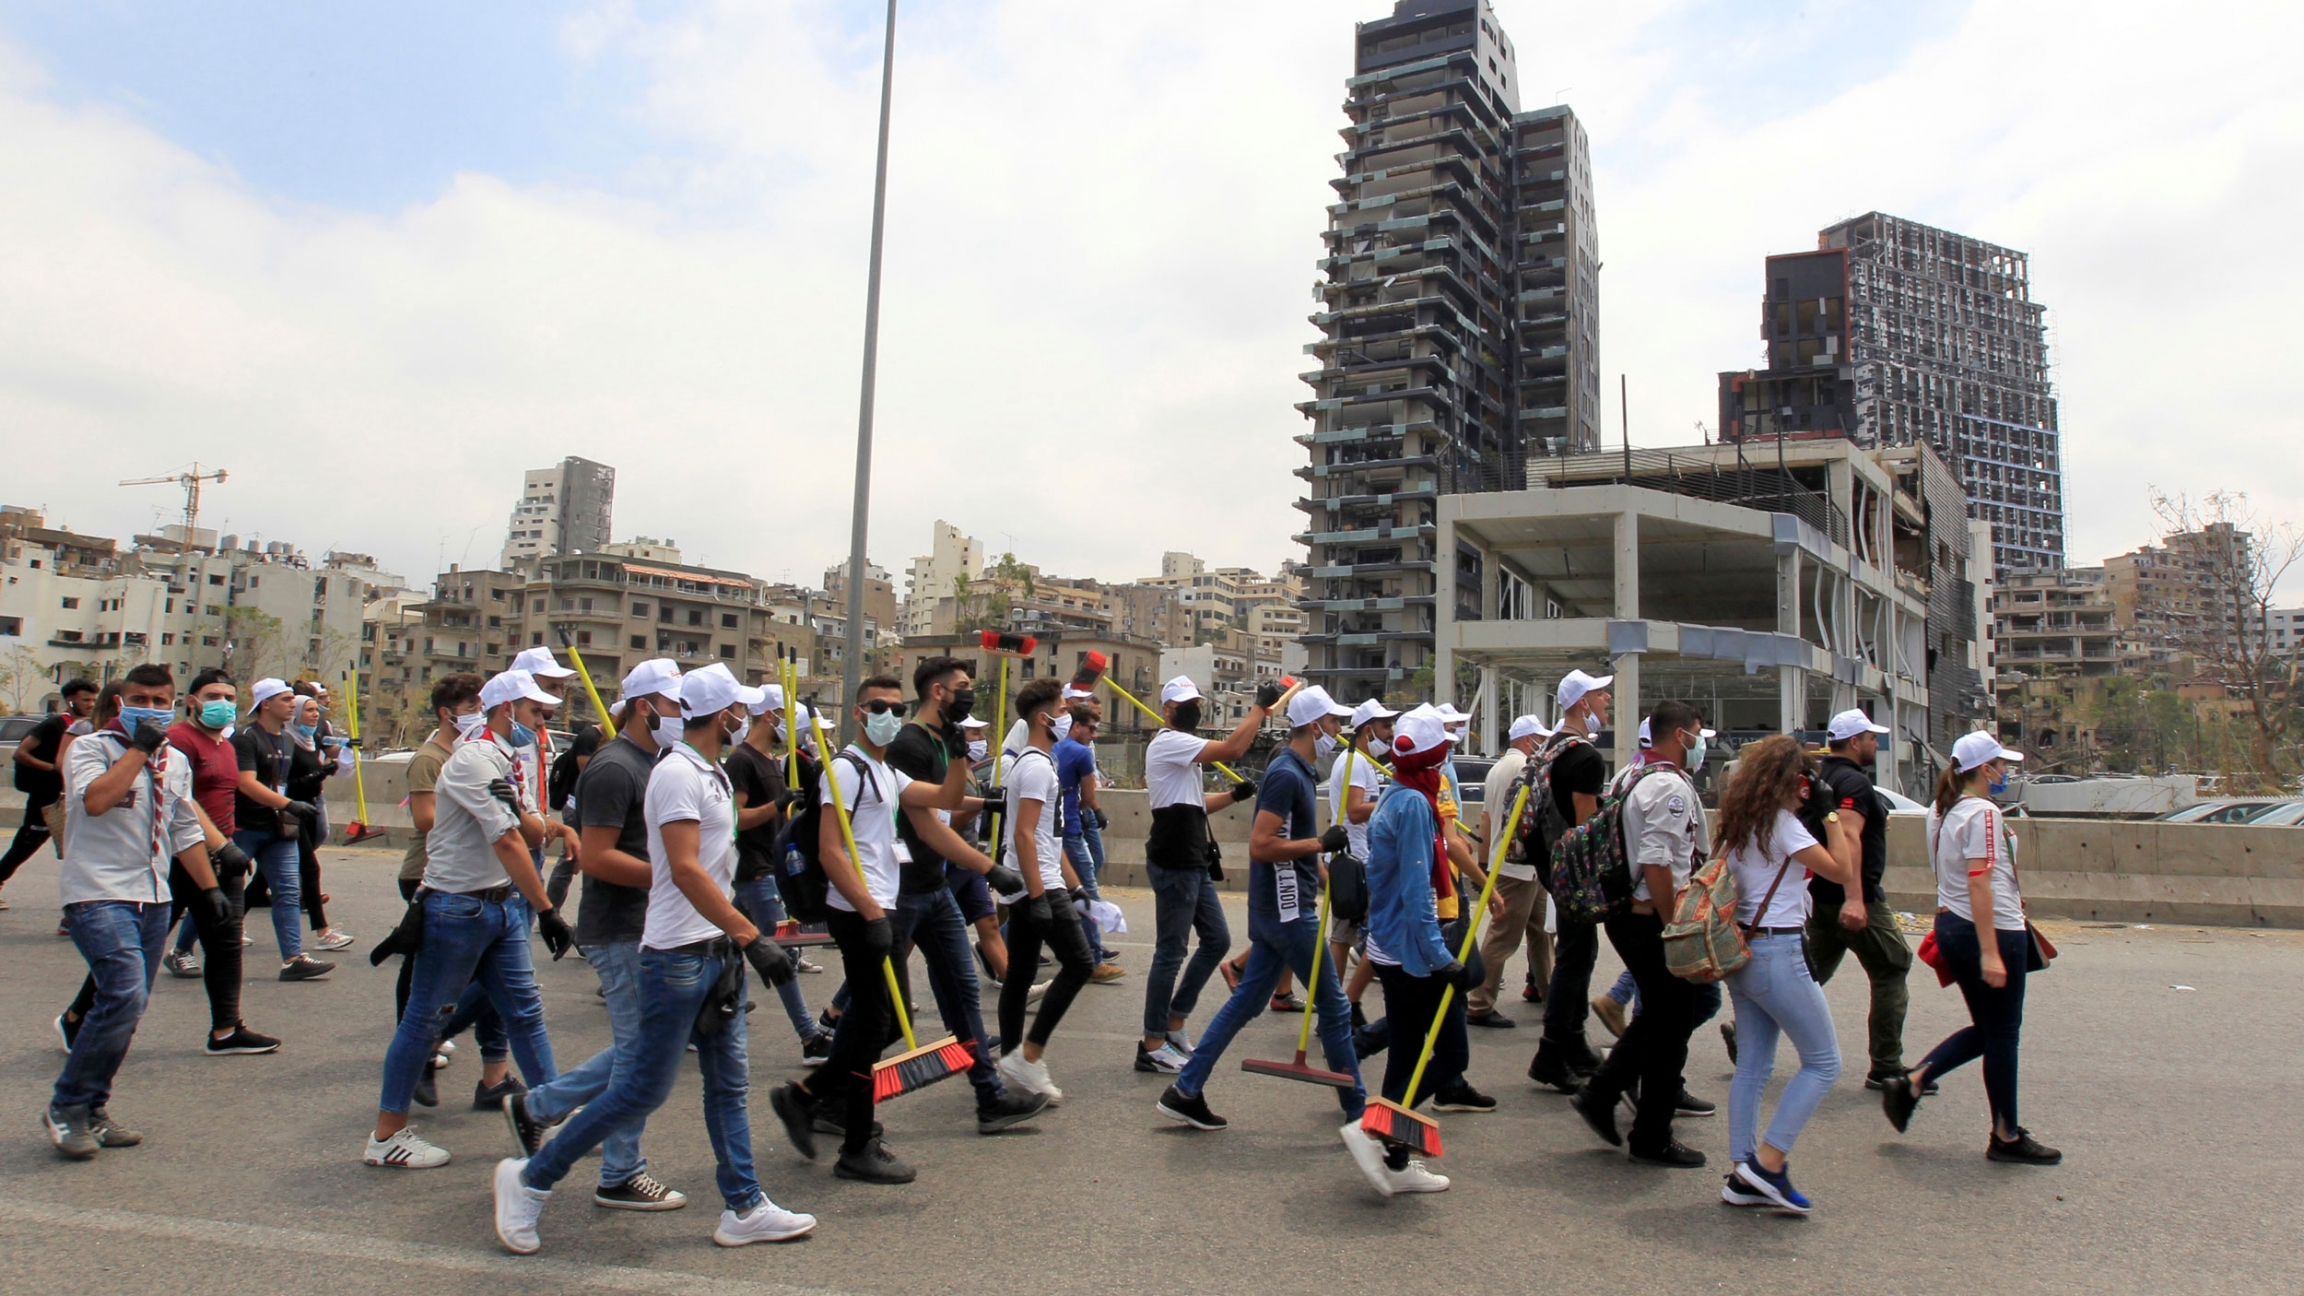 A crowd of people are shown walking in a street with many carrying a broom.